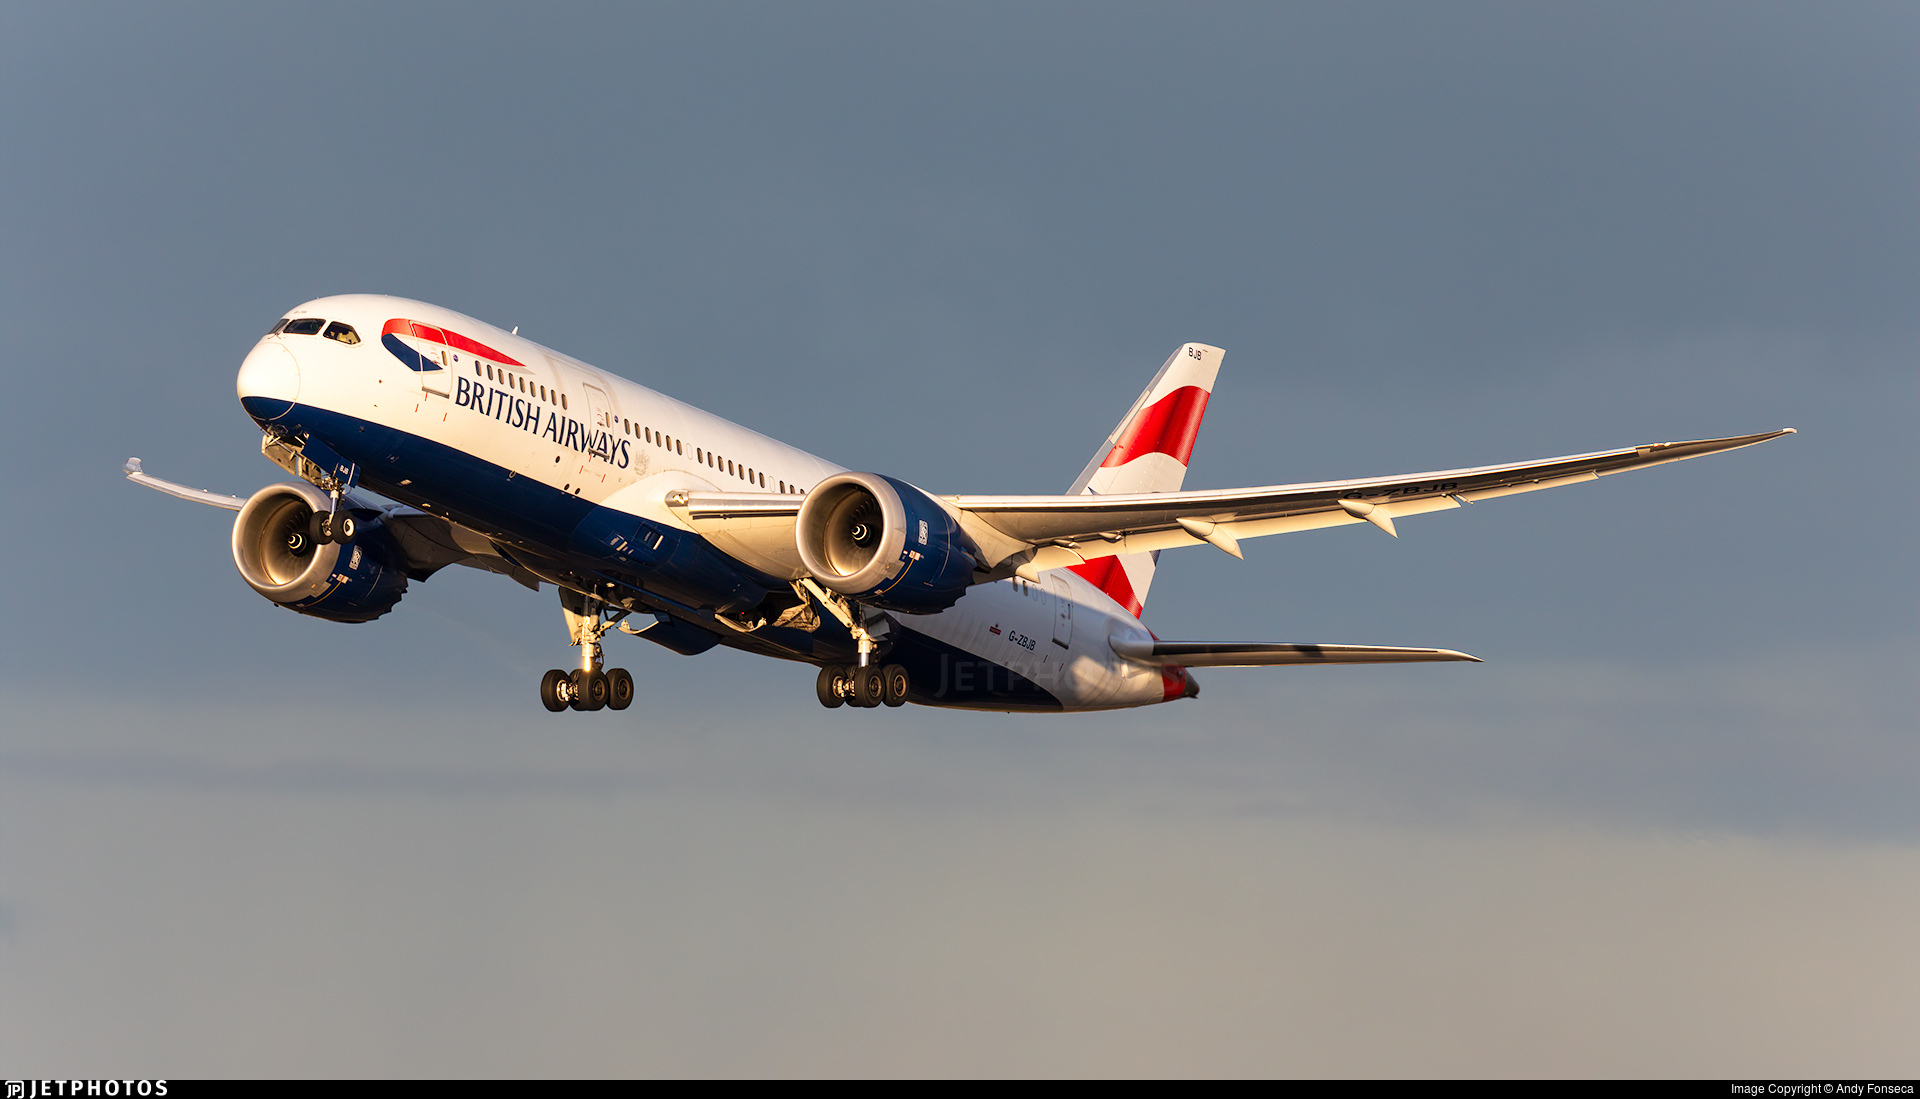 Stock image of G-ZBJB departing London